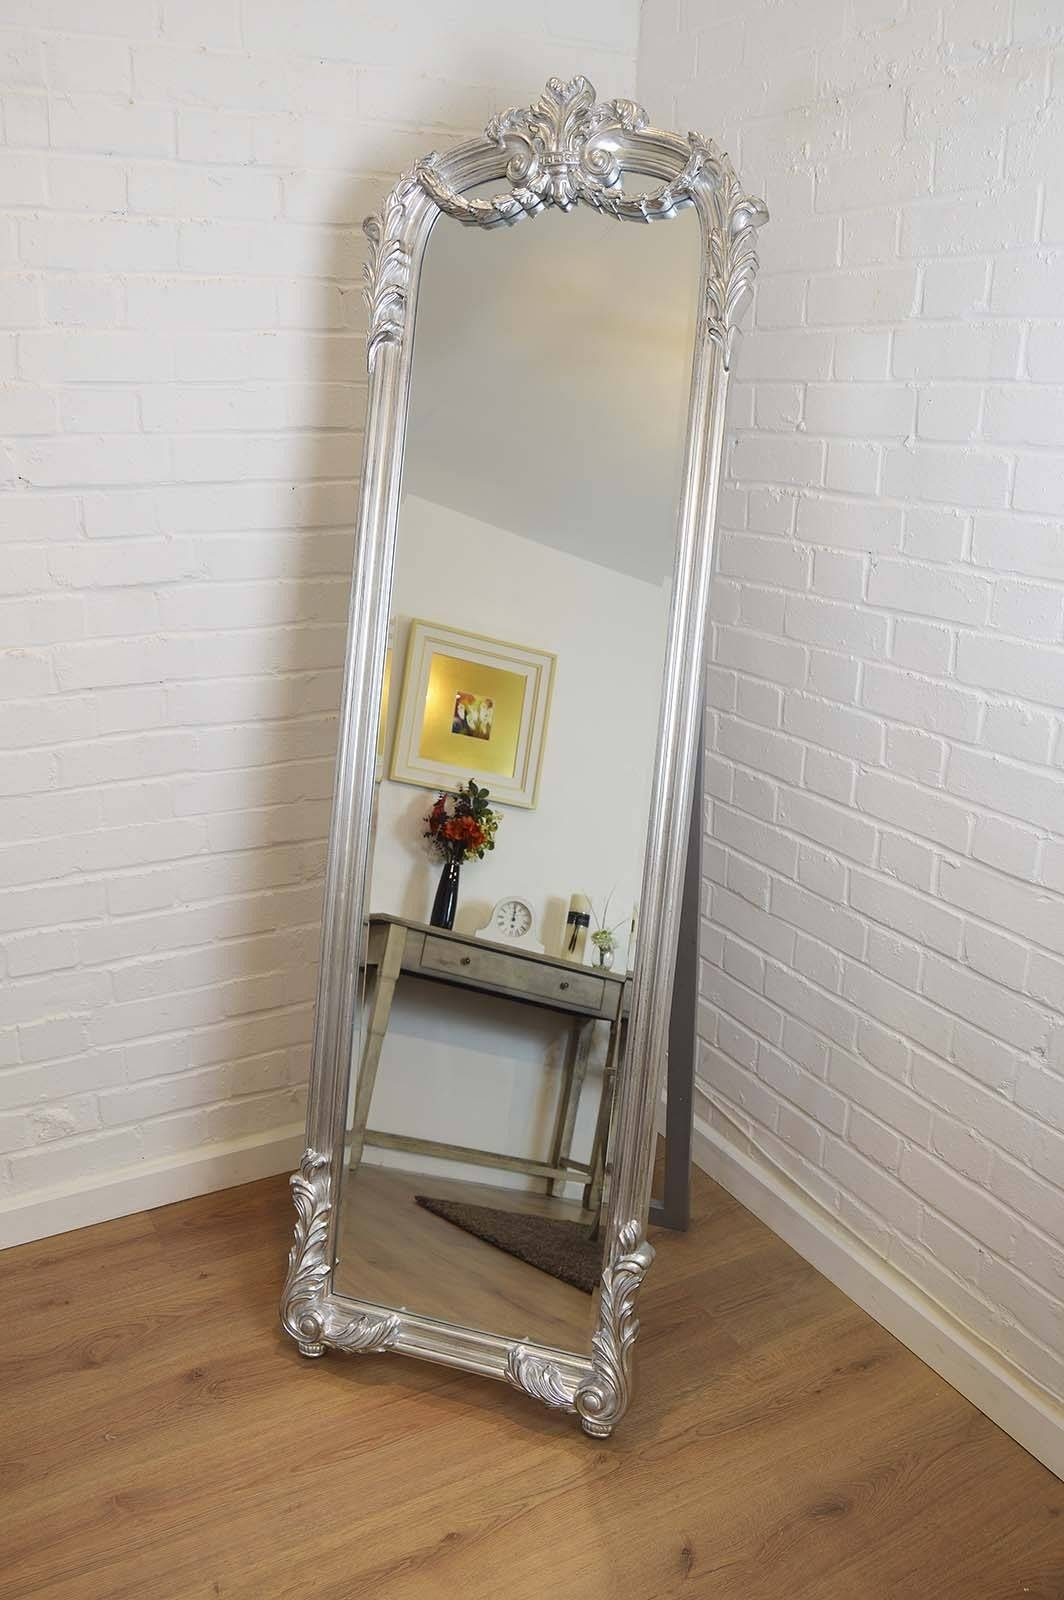 Large Free Standing Mirror 22 Awesome Exterior With Leaning Floor with regard to Free Standing Mirrors With Drawer (Image 21 of 25)